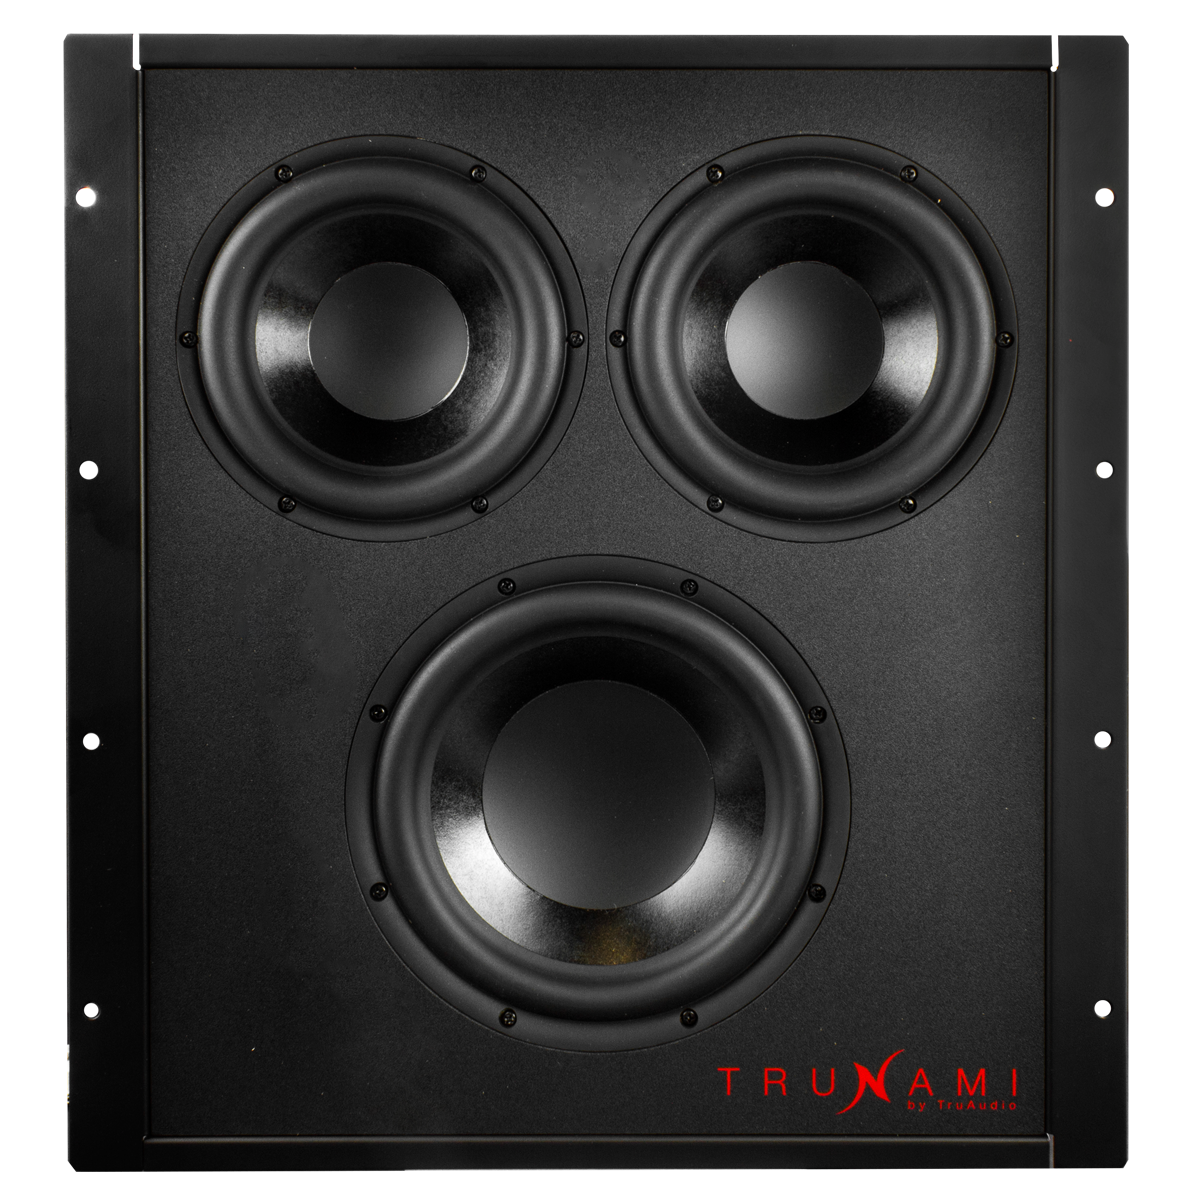 In Wall Subwoofer >> Trunami Sub